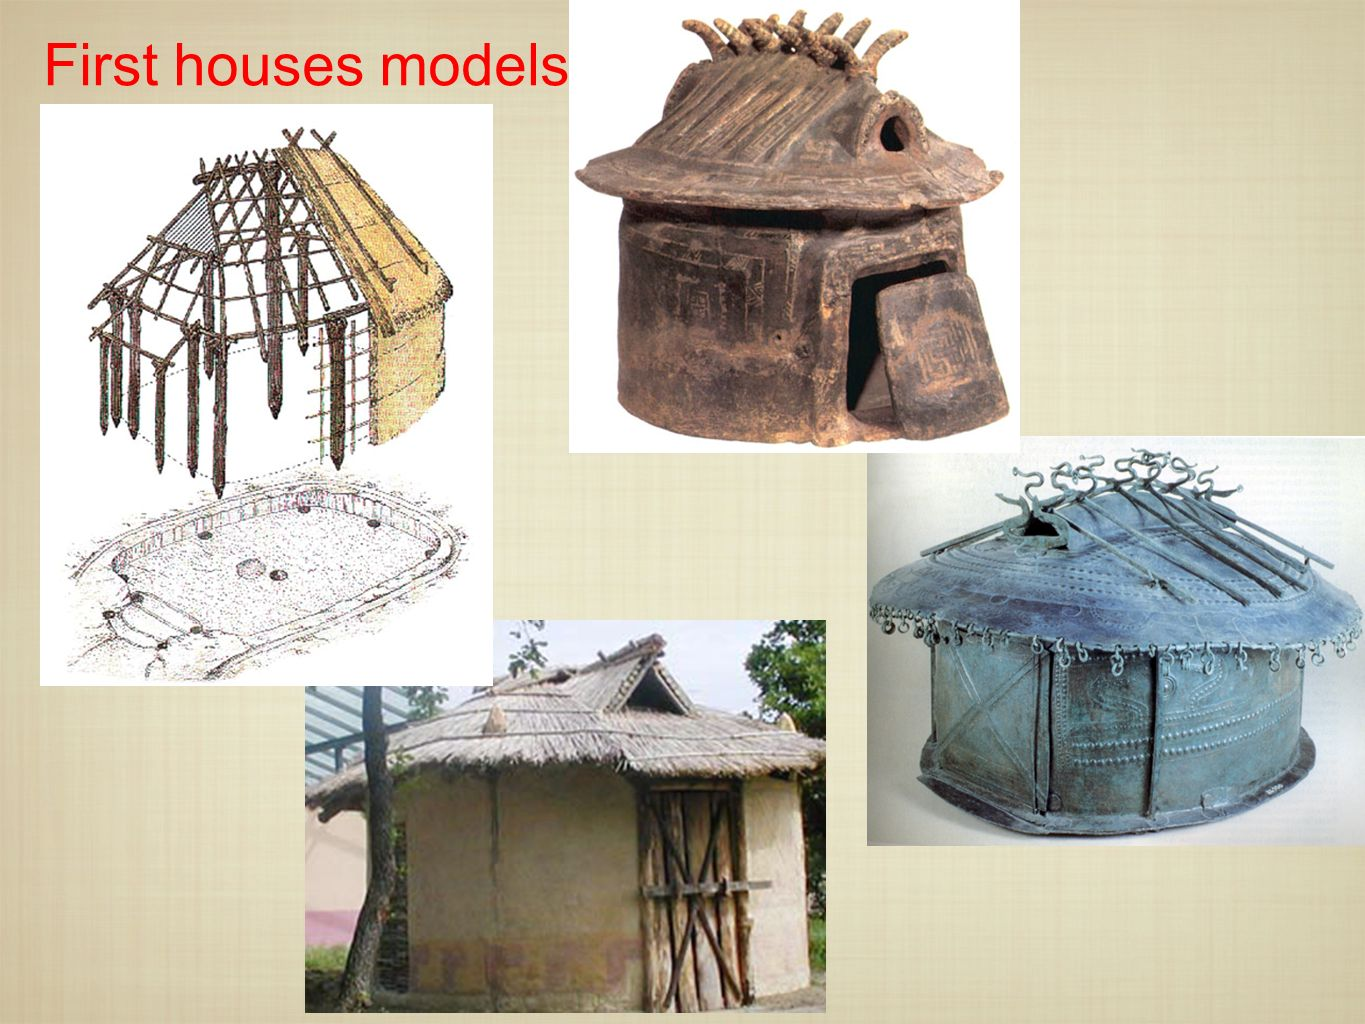 First houses models